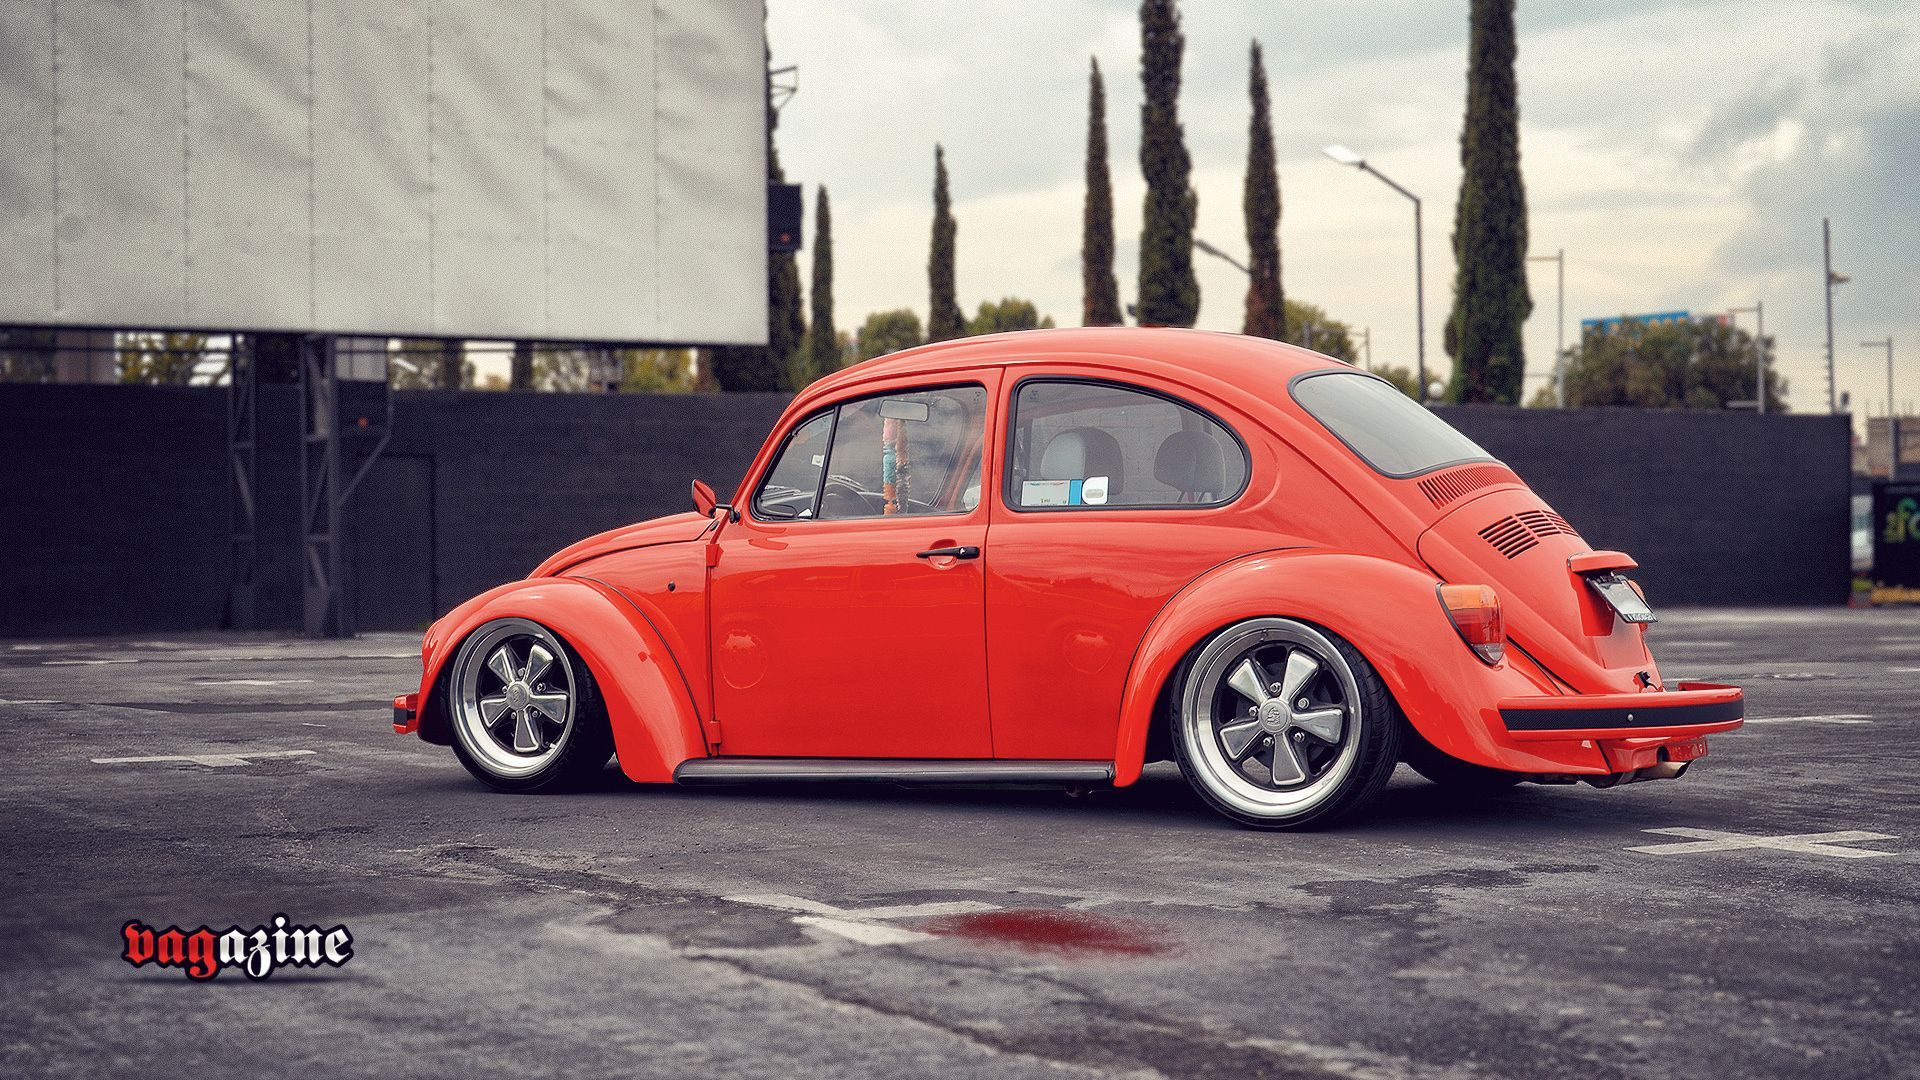 vw bug - lowered vw bug & porsche wheels | vw | pinterest